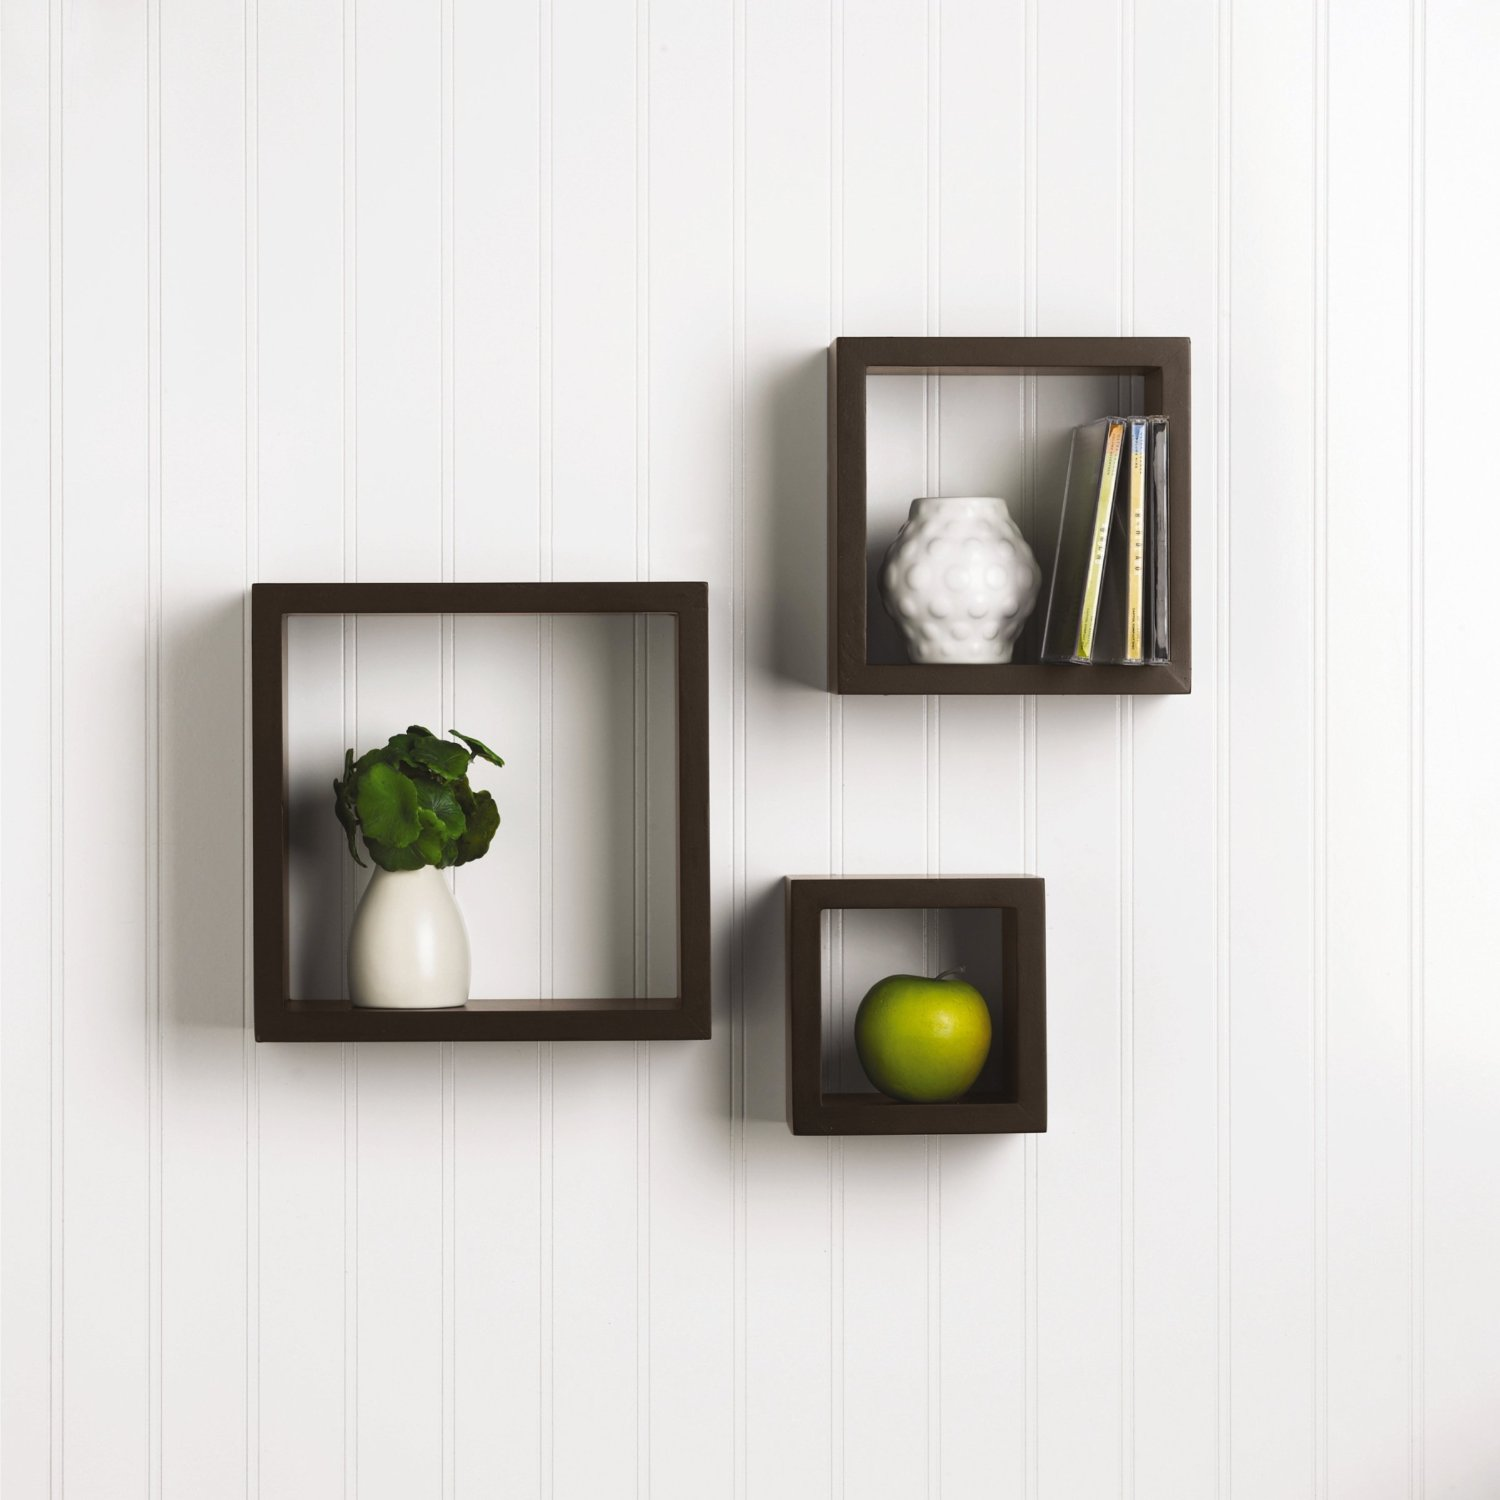 floating wall shelves under that you love shelf cubes rectangular top garage cabinet systems entry way coat hangers wooden canadian tire ikea stainless kitchen cart organizer over